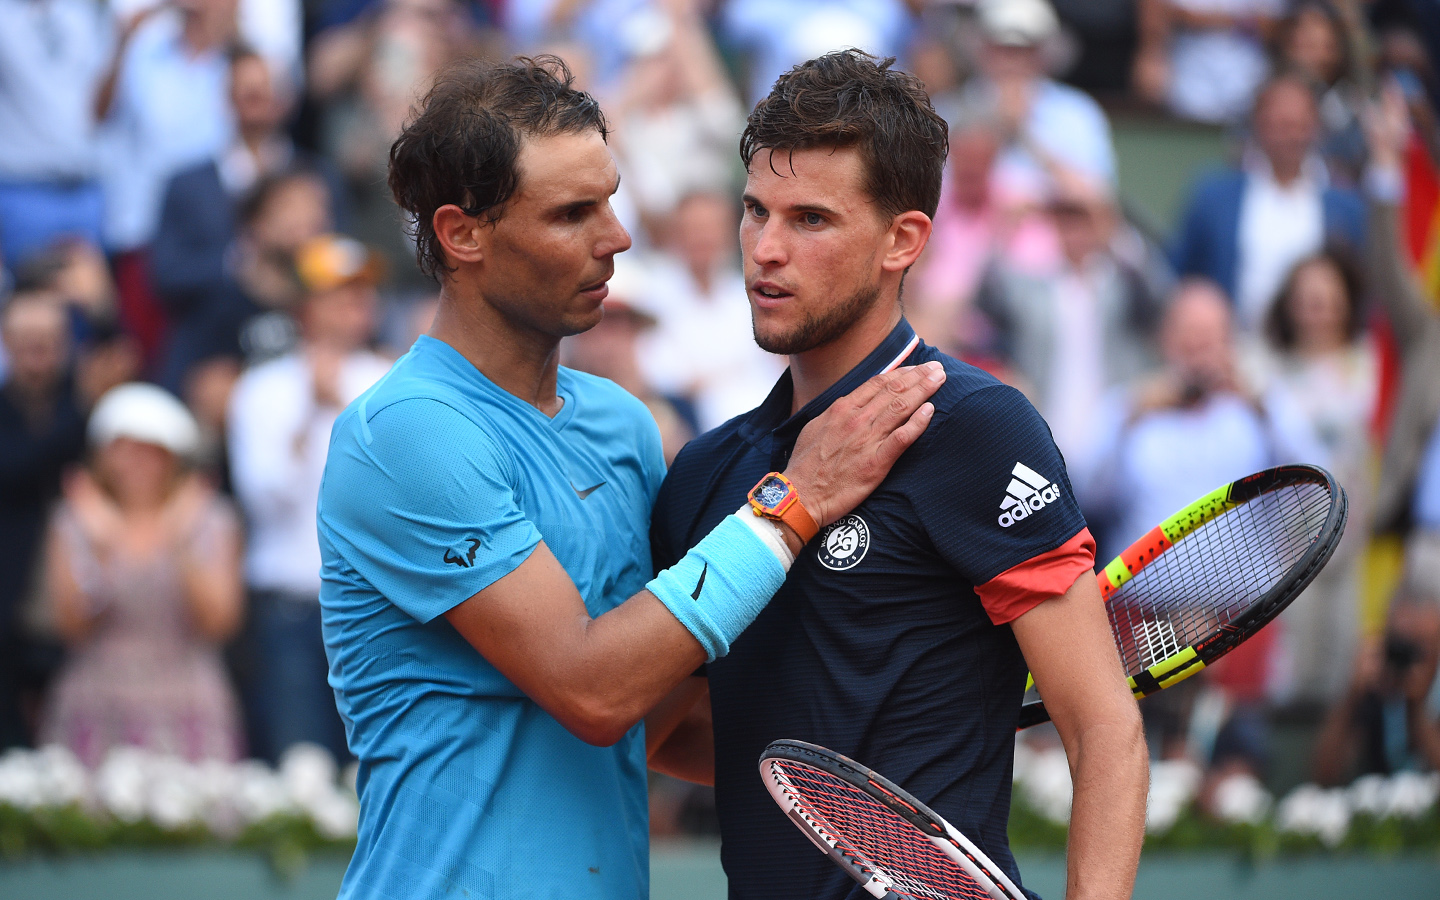 It's all set for Nadal vs Thiem Final at Roland Garros